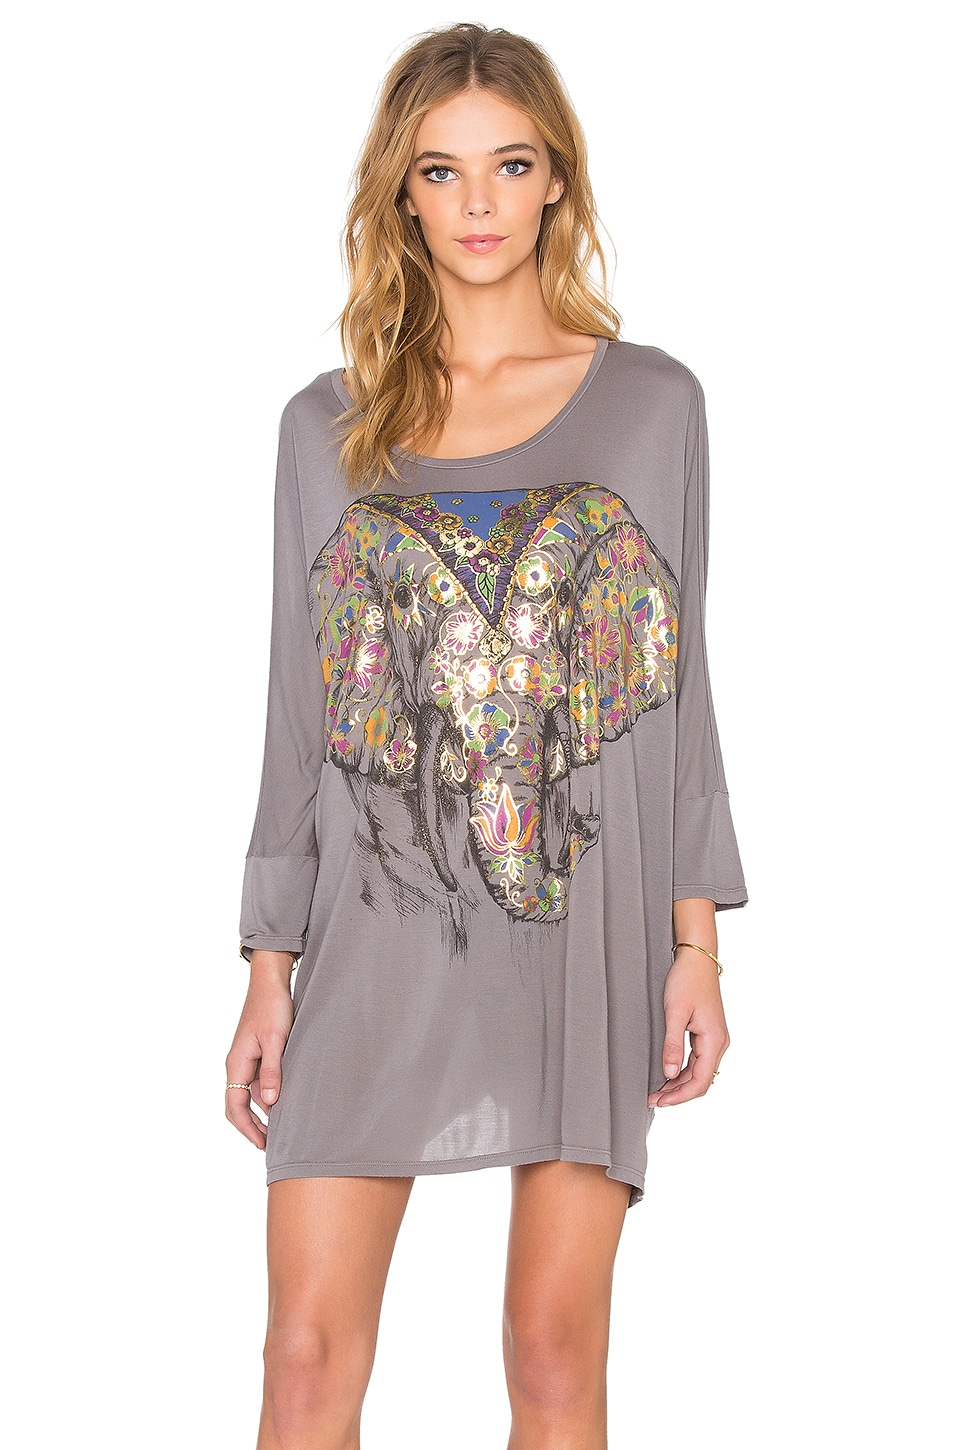 Lauren Moshi Milly Large Floral Elephant Oversized Dress in Steel